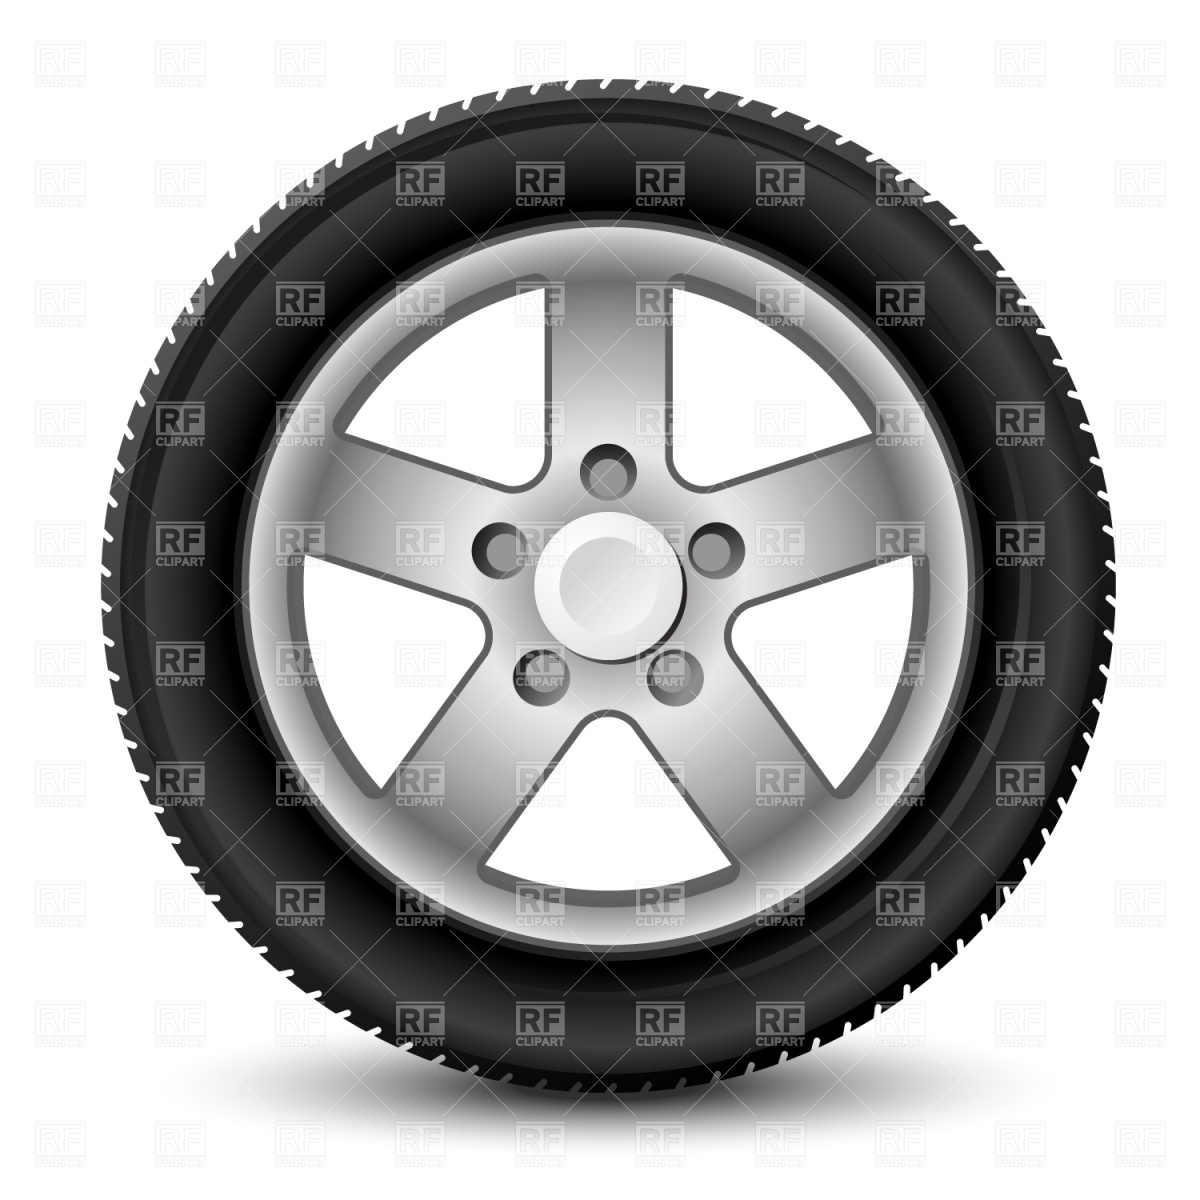 1200x1200 Tire Clipart Free Collection